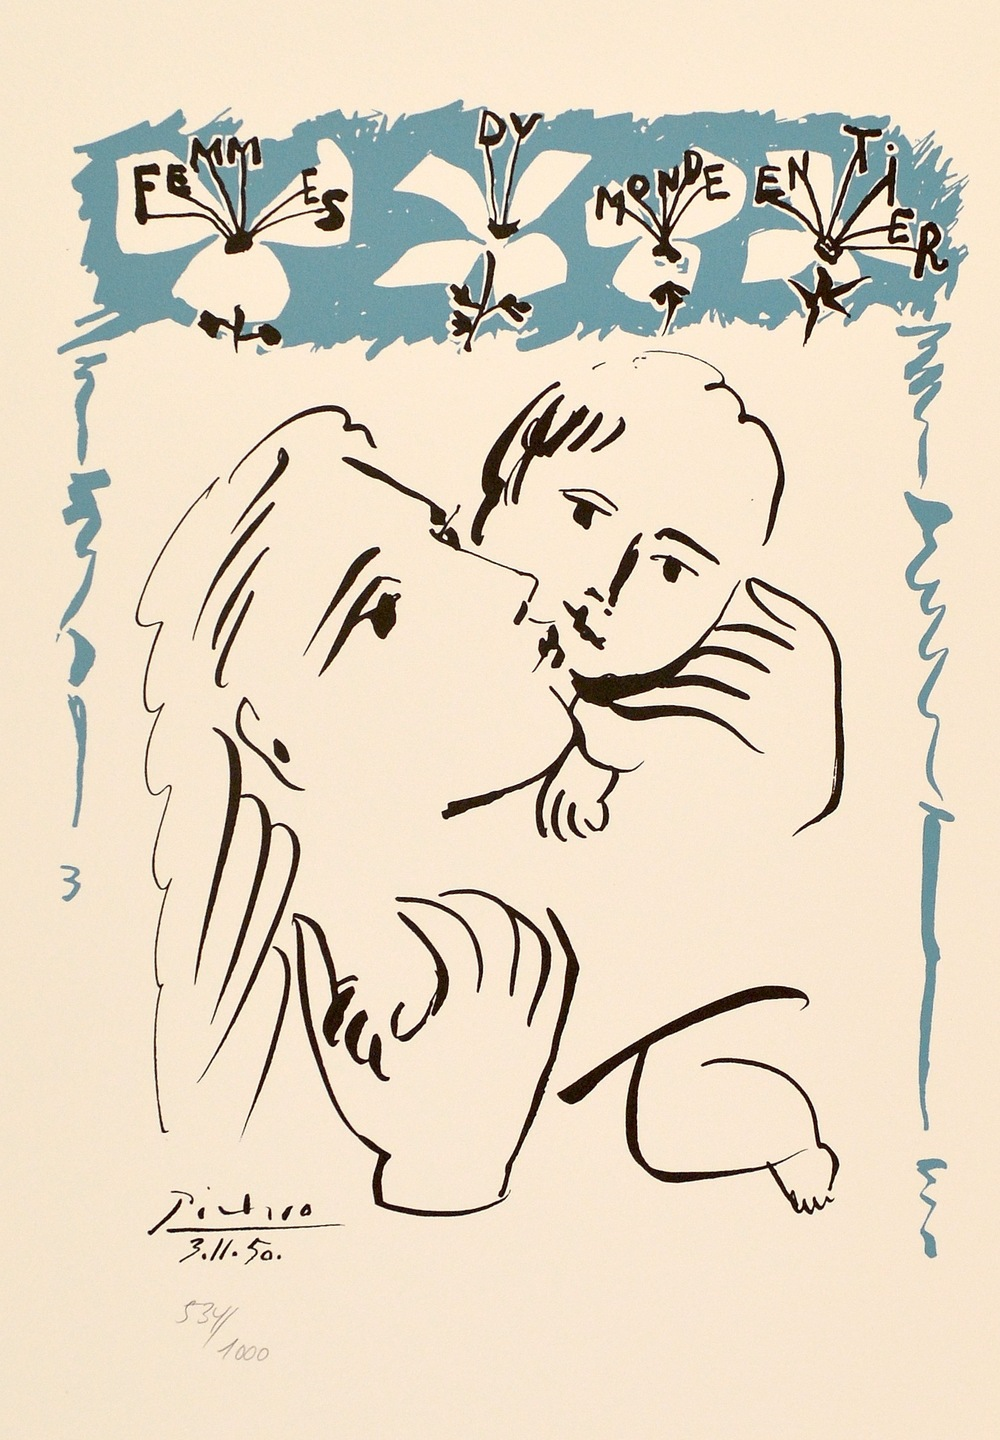 Year: 1965 Medium: Lithograph Image size: 18 x 13